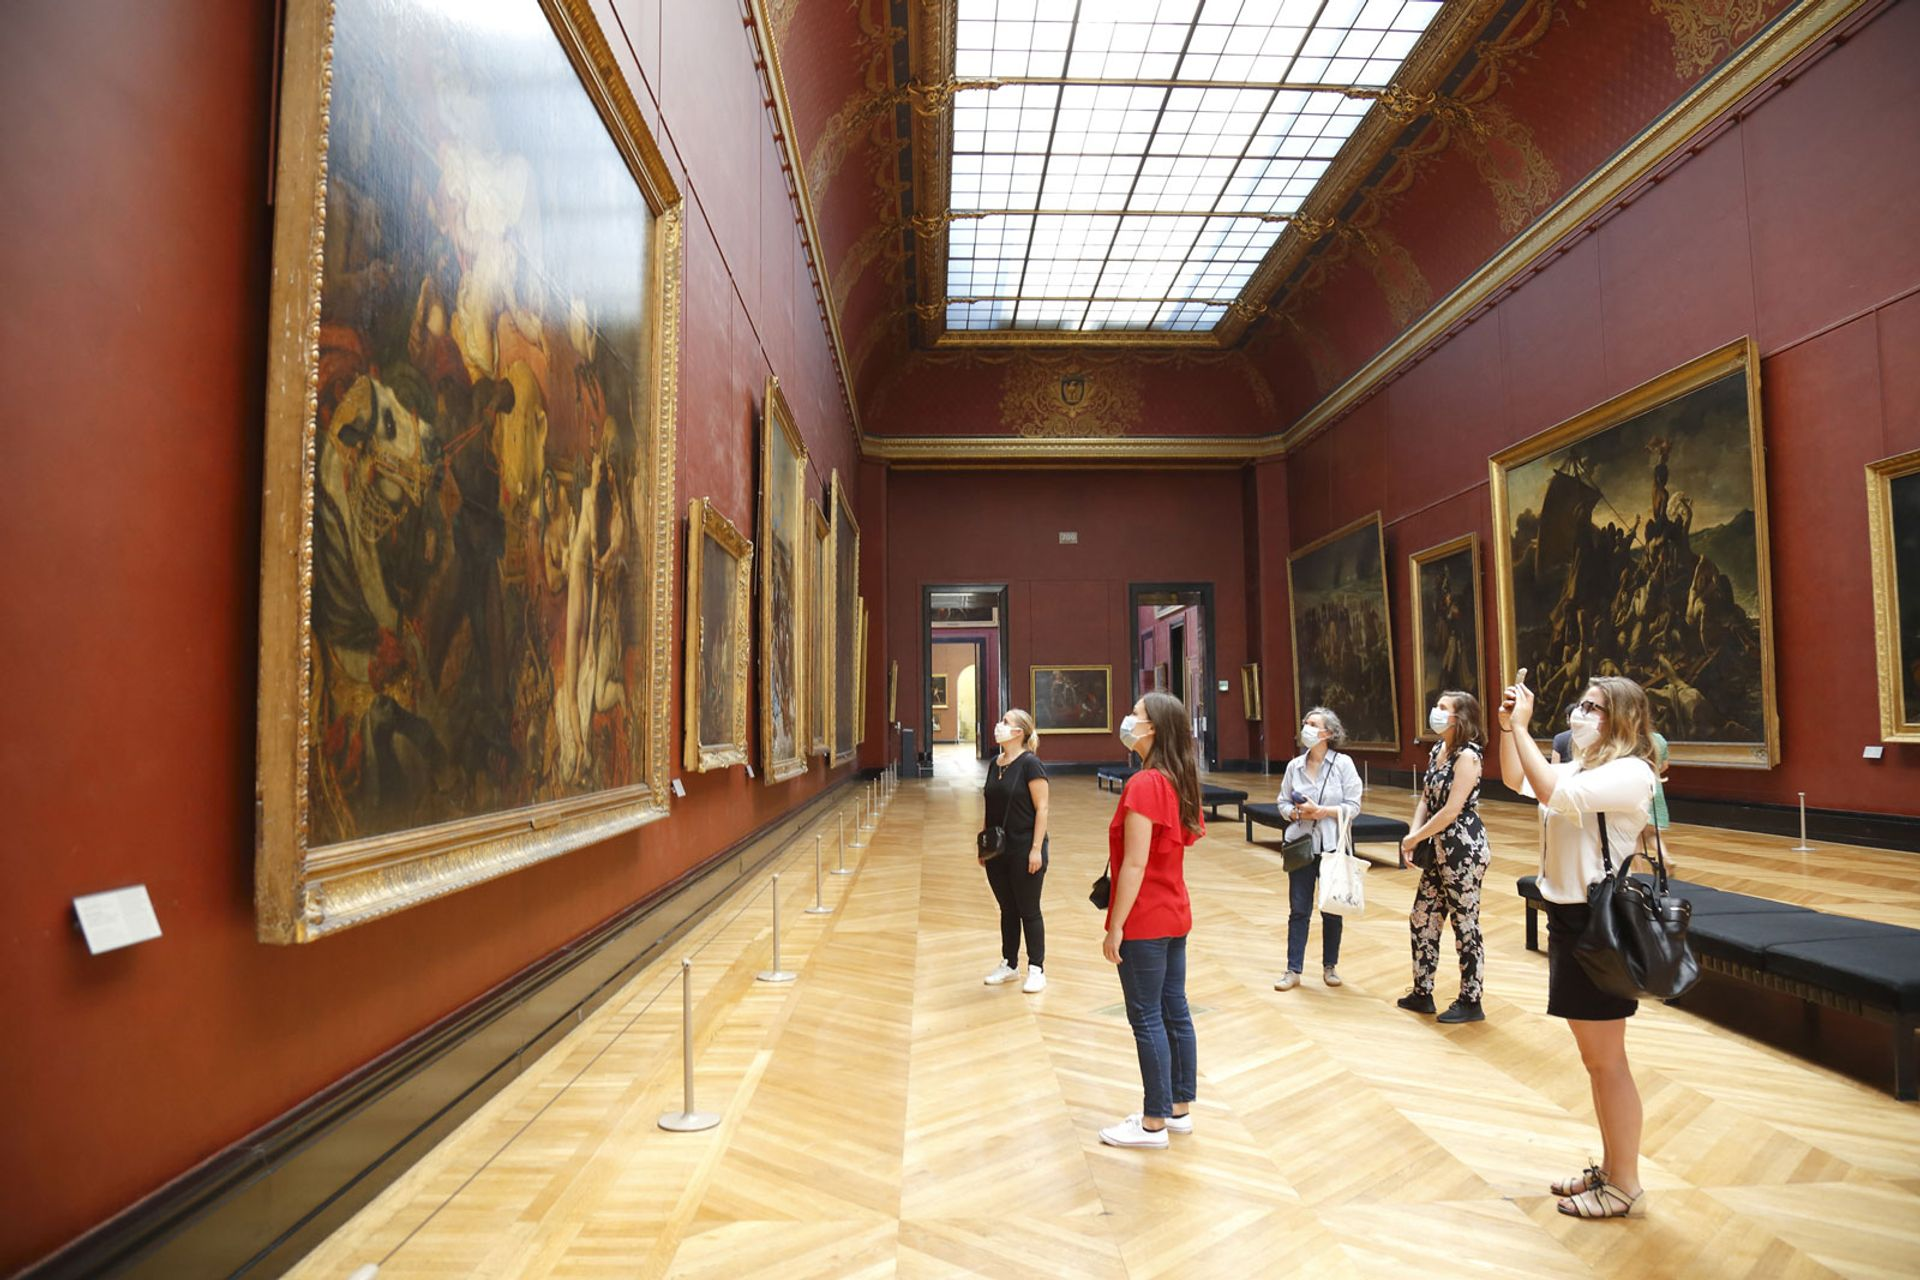 Visitors in the Musée du Louvre in 2020 © Antoine Mongodin